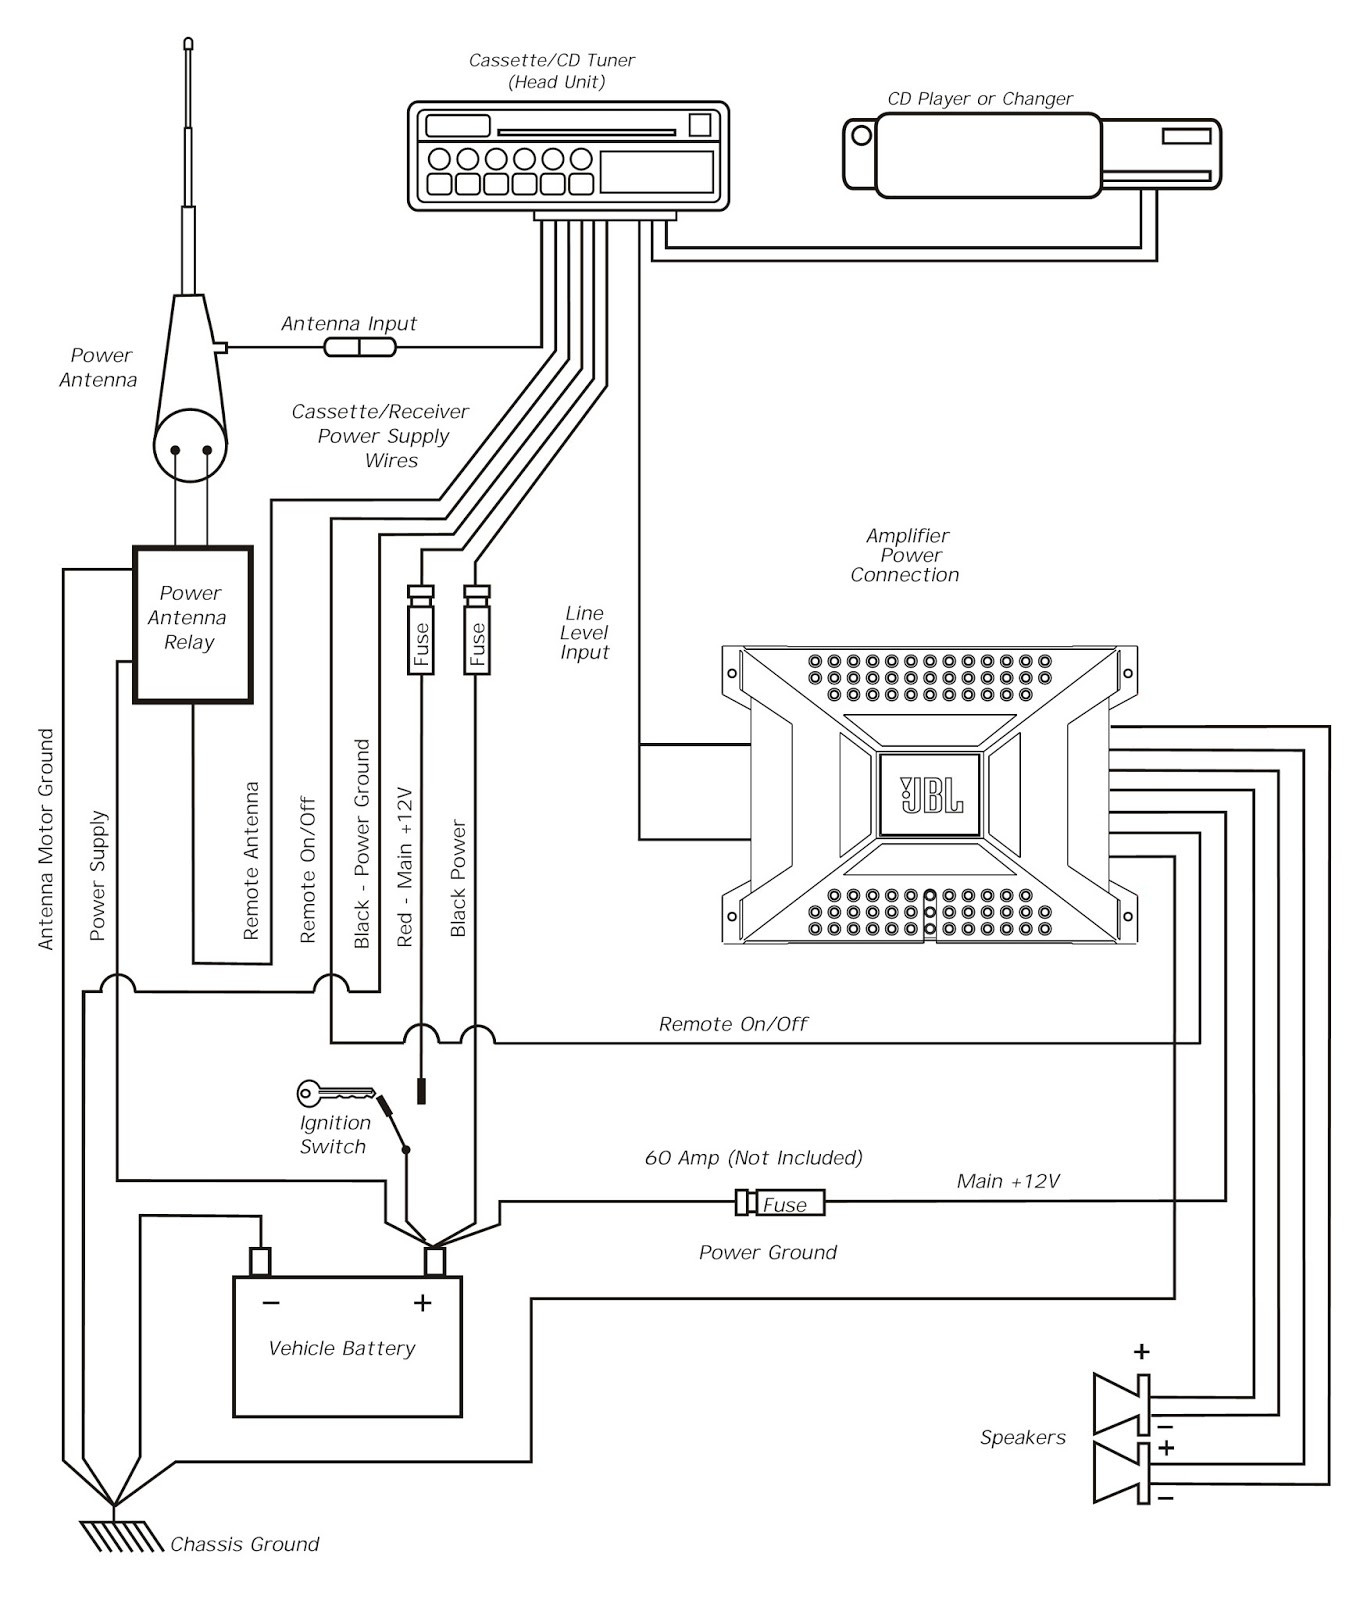 rp5 gm11 wiring diagram Download-wiring diagram for car stereo to and valid pac high power sni 50a rh ipphil 1-o